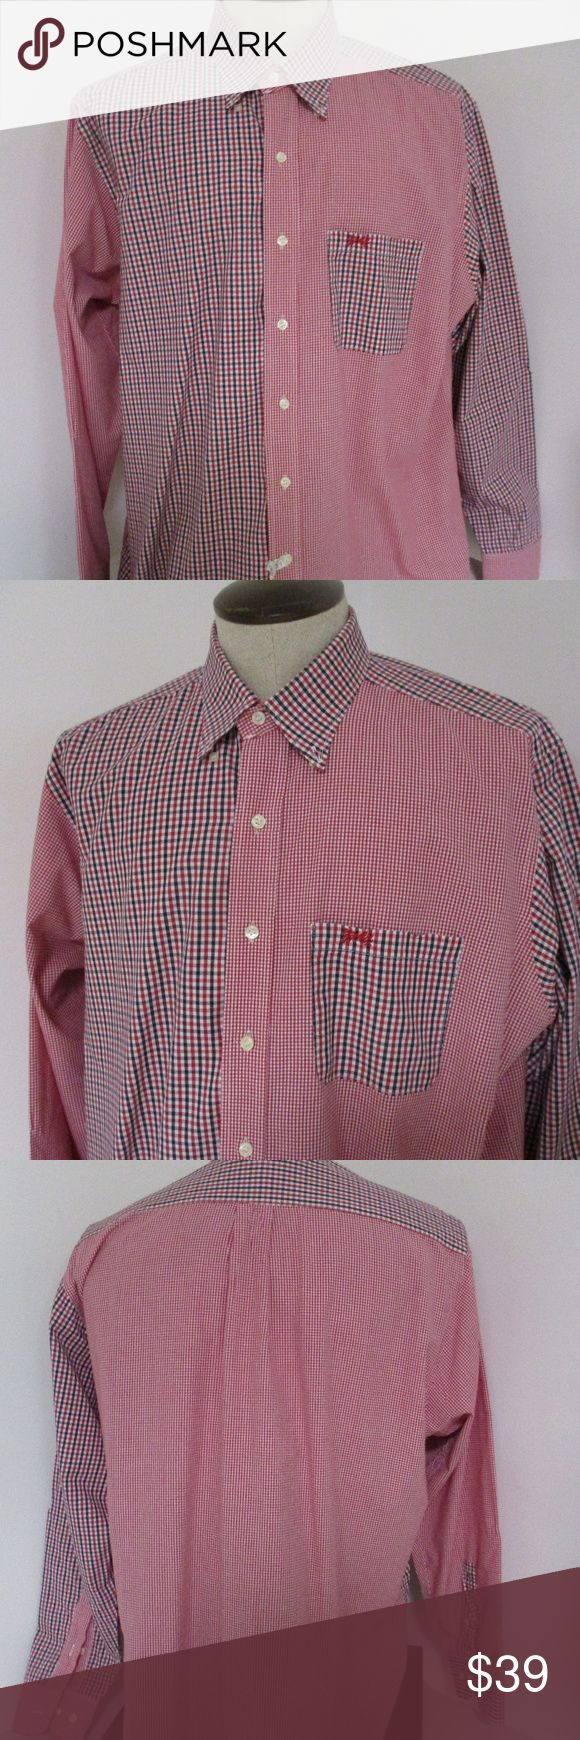 """Fraternity Collection Red Black Plaid Shirt XL Very cool shirt from Fraternity Collection     Size XL     Red , black and white plaid mixed with red and white plaid     100% cotton     Excellent condition, just dry cleaned     Chest- 26"""" laid flat  Length- 30"""" Fraternity Collection Shirts Casual Button Down Shirts"""